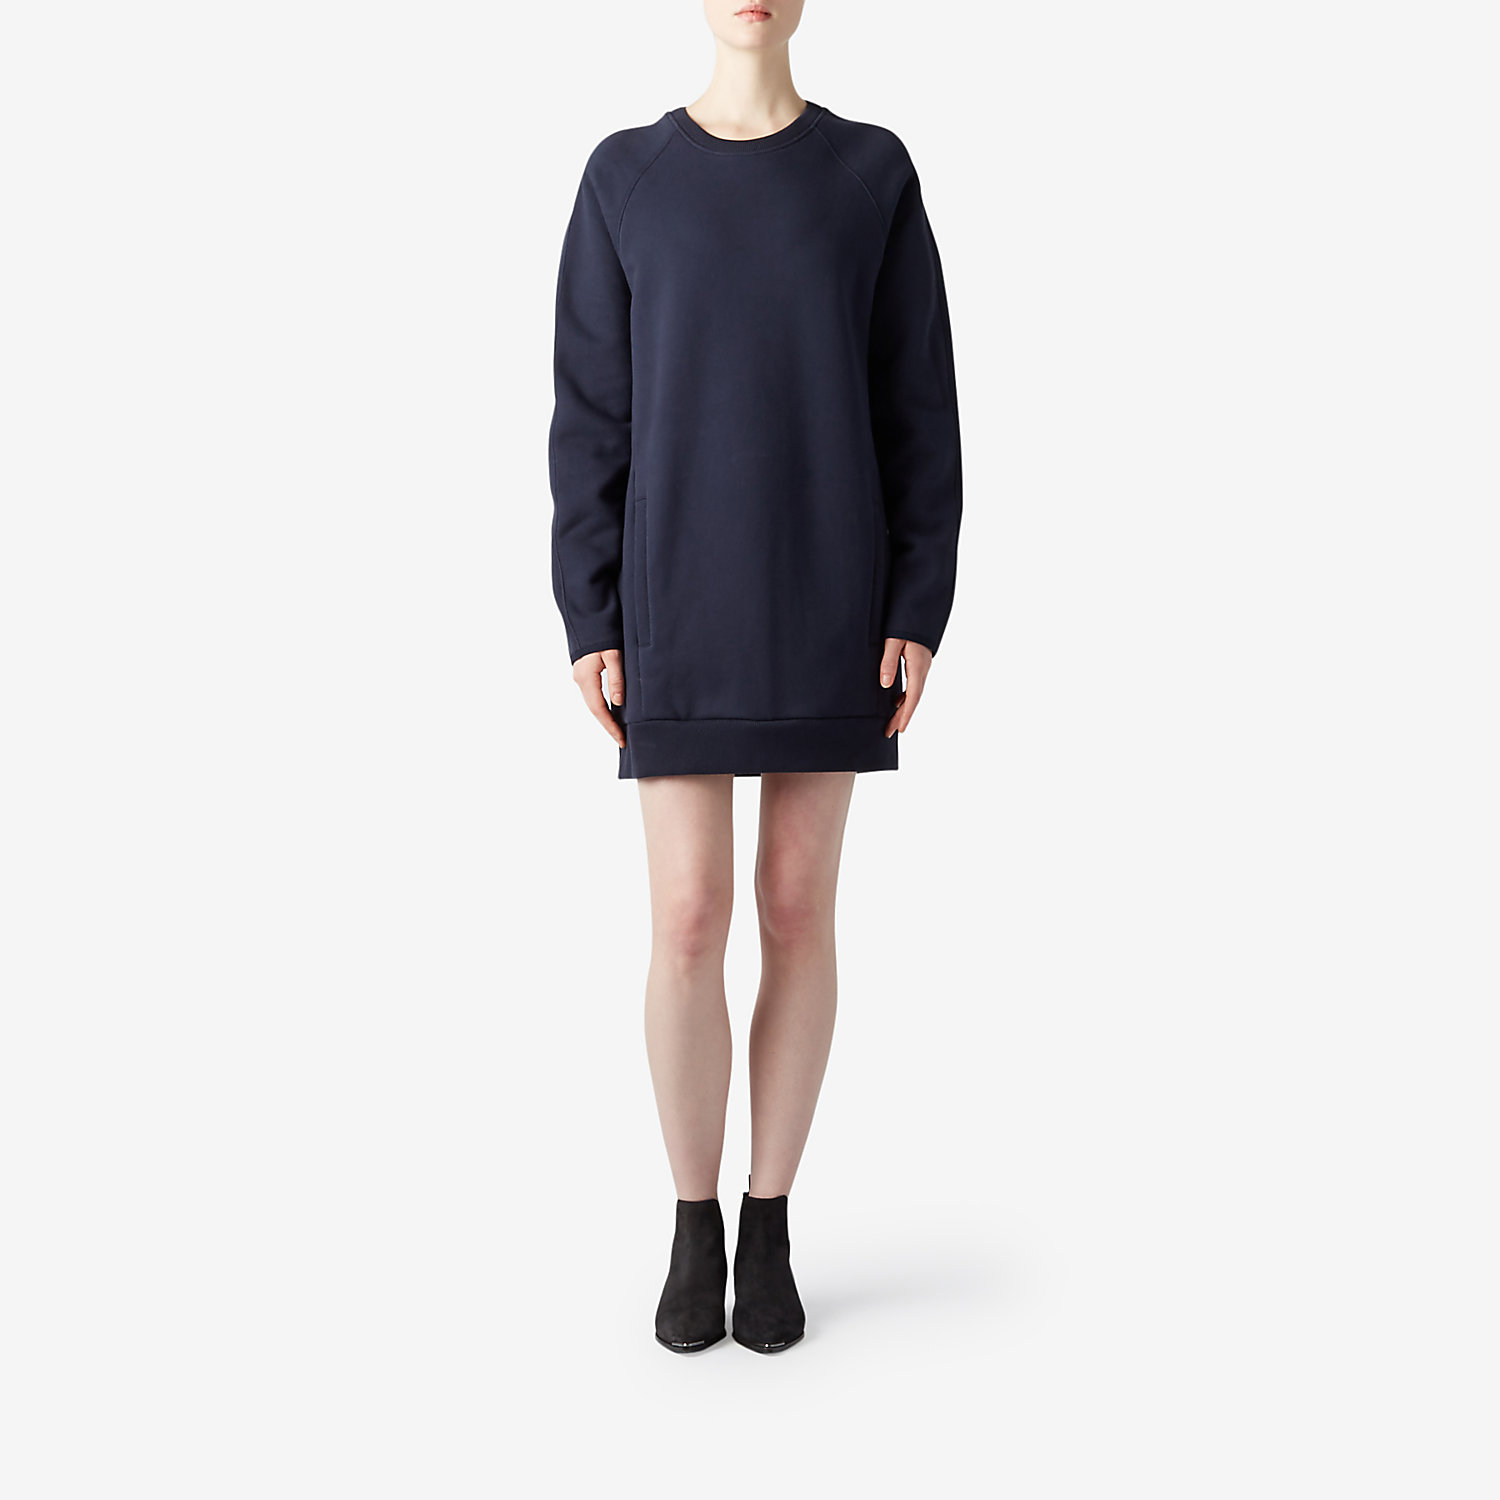 FIERA SWEATSHIRT DRESS